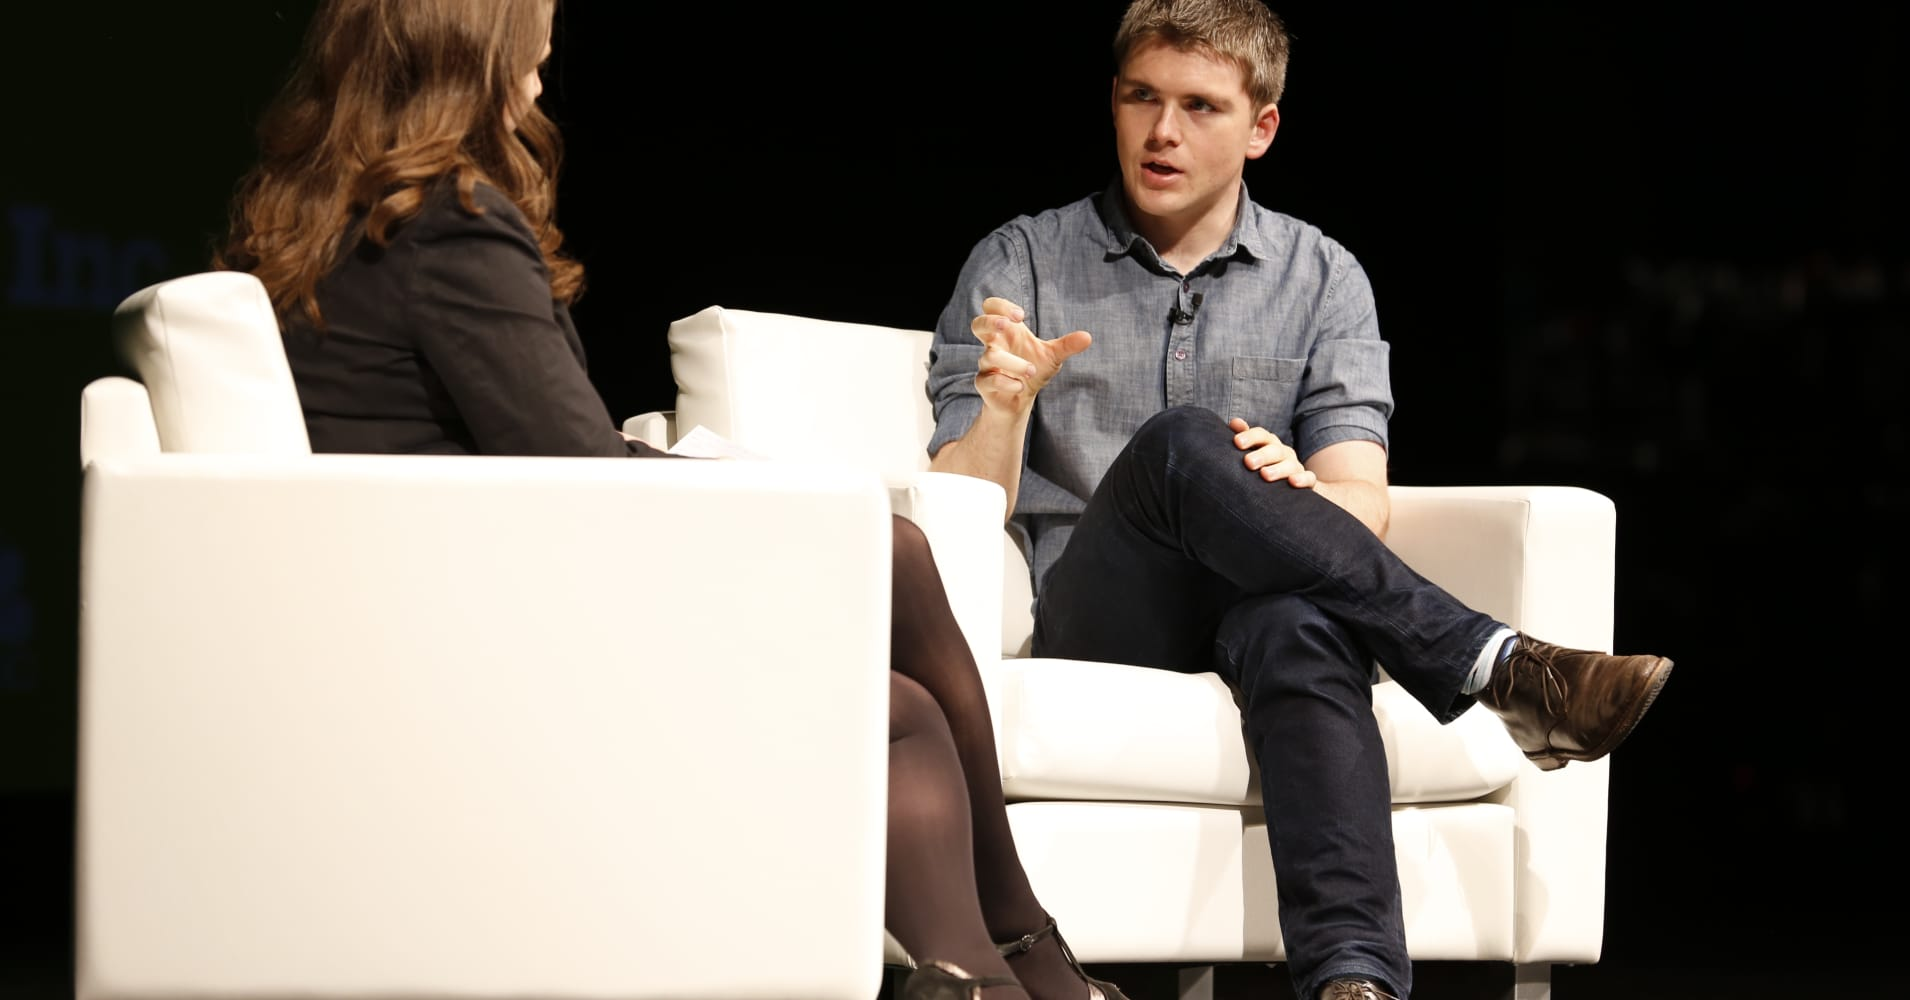 John Collison, President & Co-founder of Stripe, at the iConic:Seattle conference on April 5, 2016.